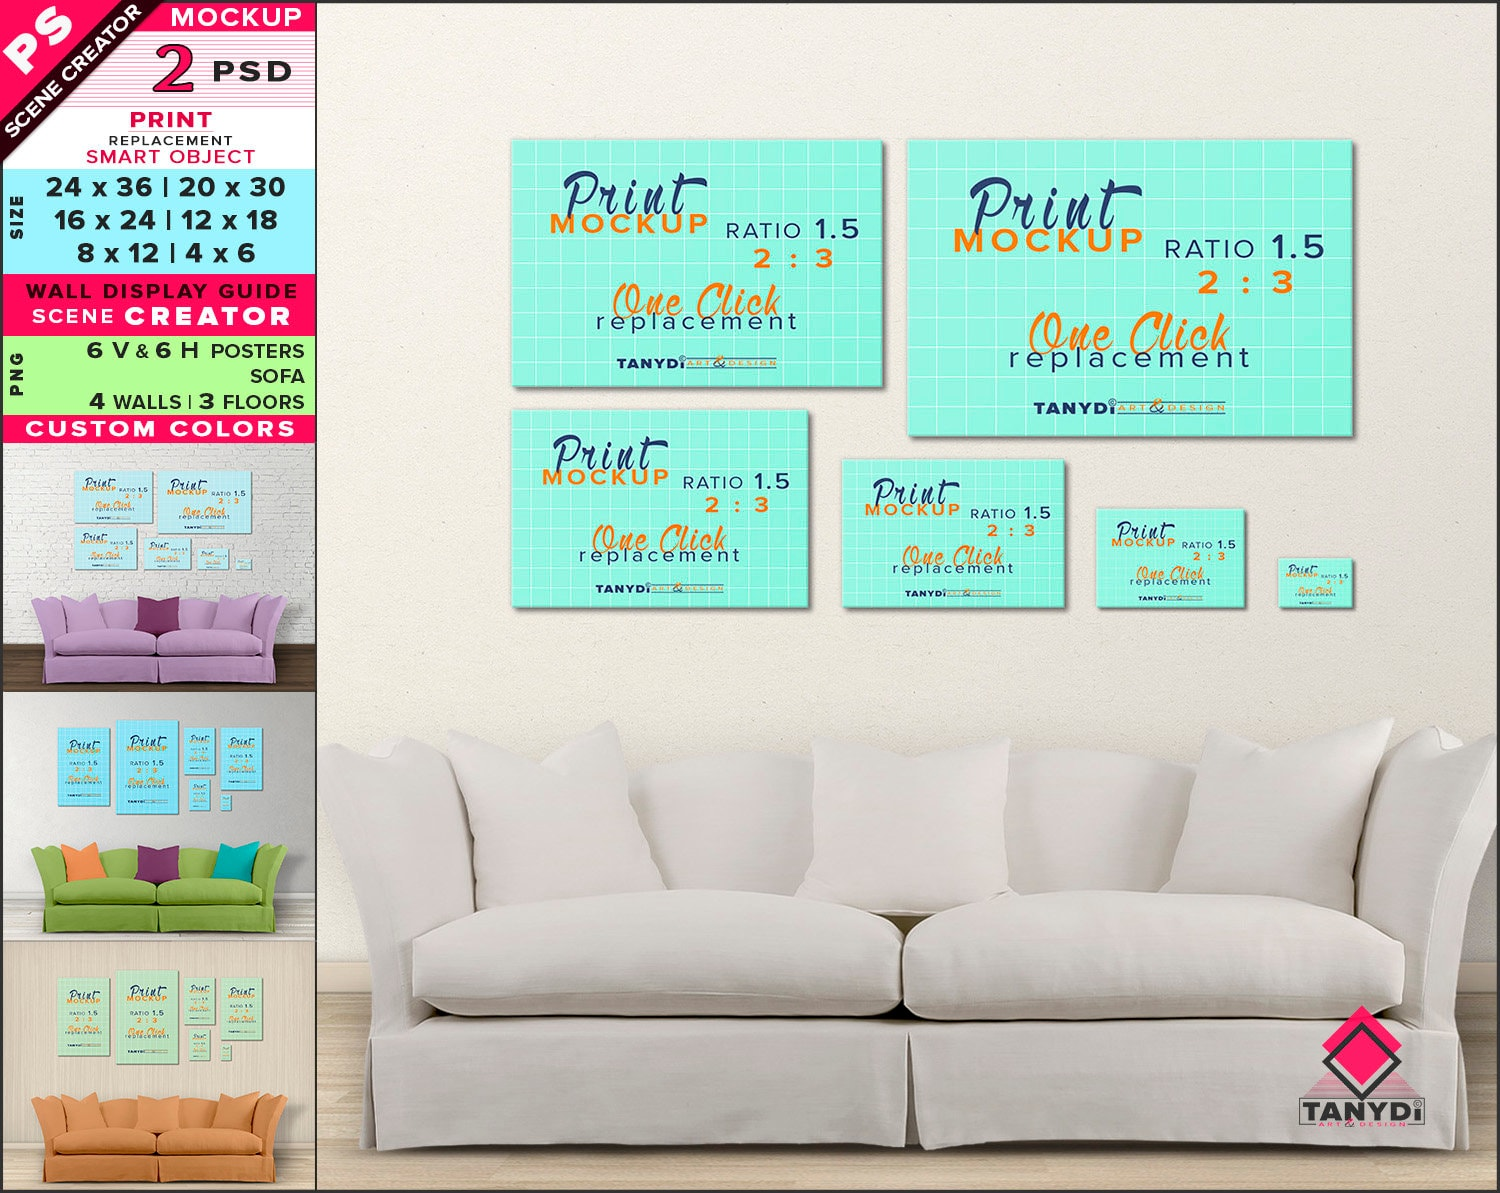 Review 4x6 Sofa Wall Display Guide 24x36 20x30 16x24 12x18 8x12 4x6 Scene Creator Photoshop Print Mockup Vertical Horizontal Posters Sofa Interior 3 6